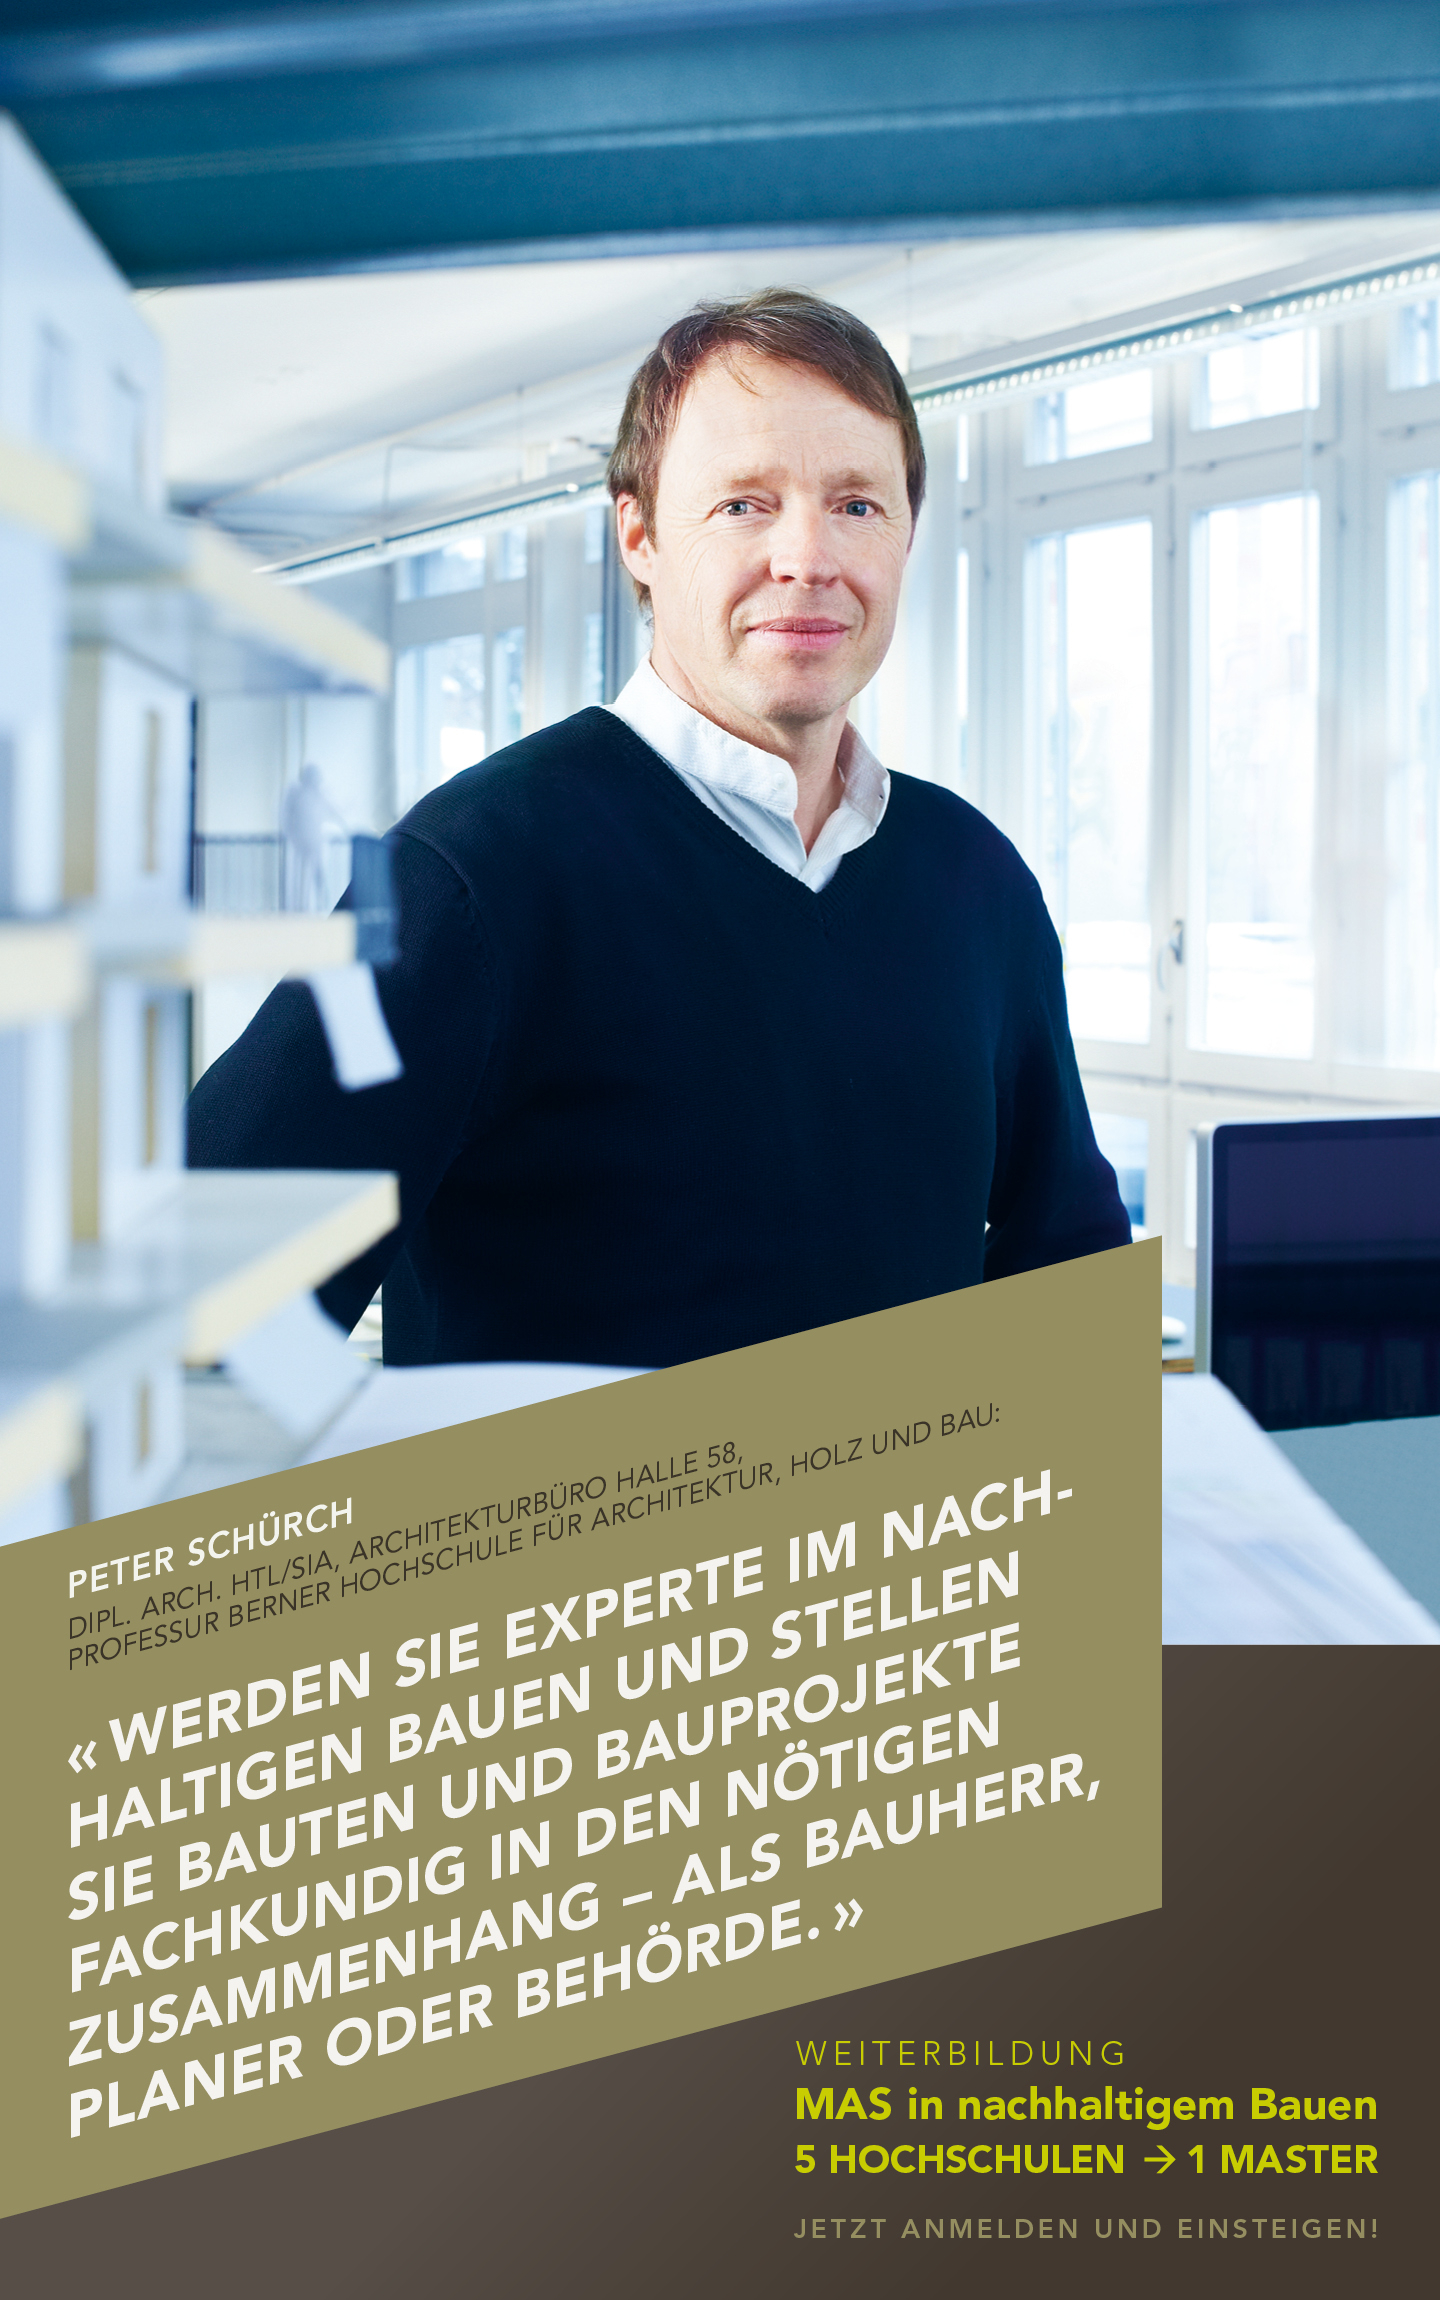 Peter Schürch, Architekt